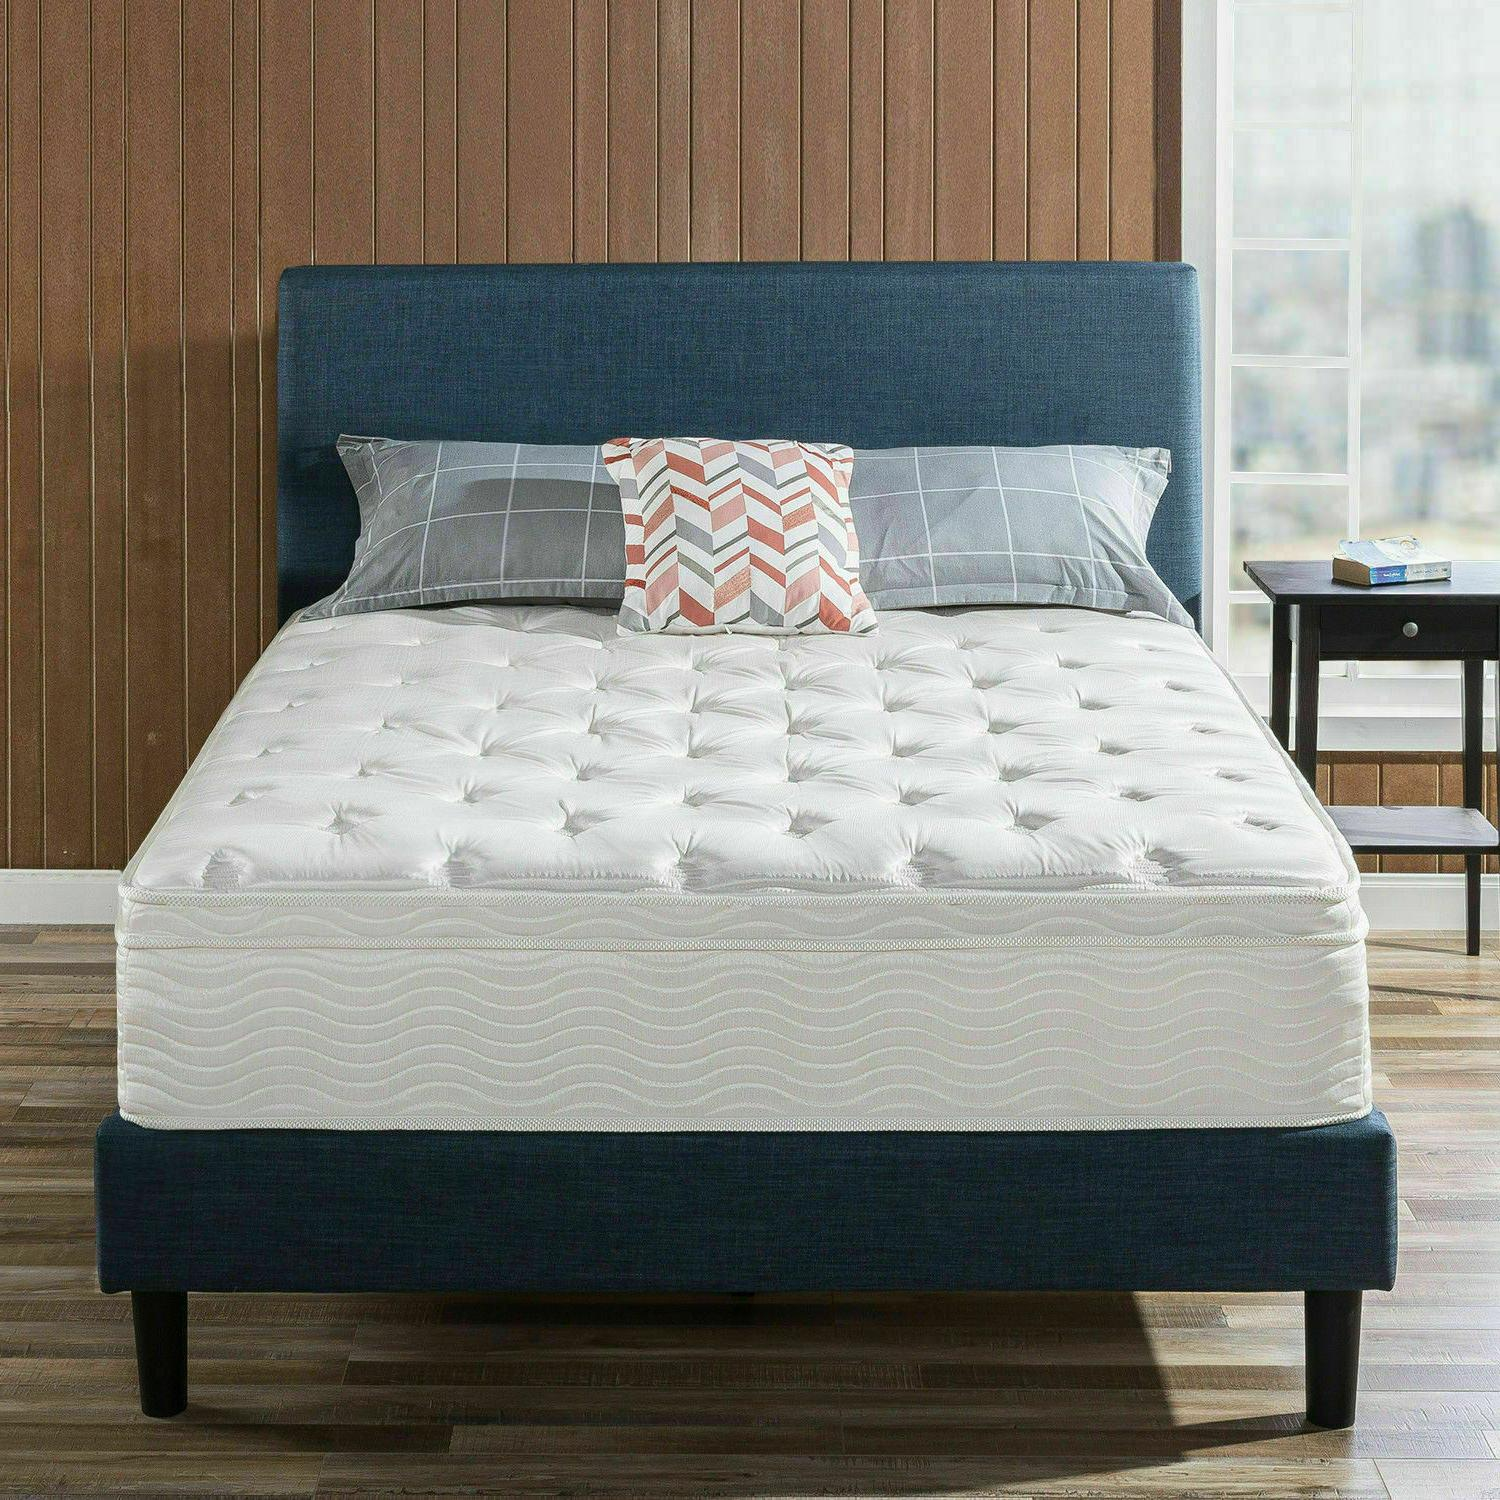 12 inch spring support queen size mattress